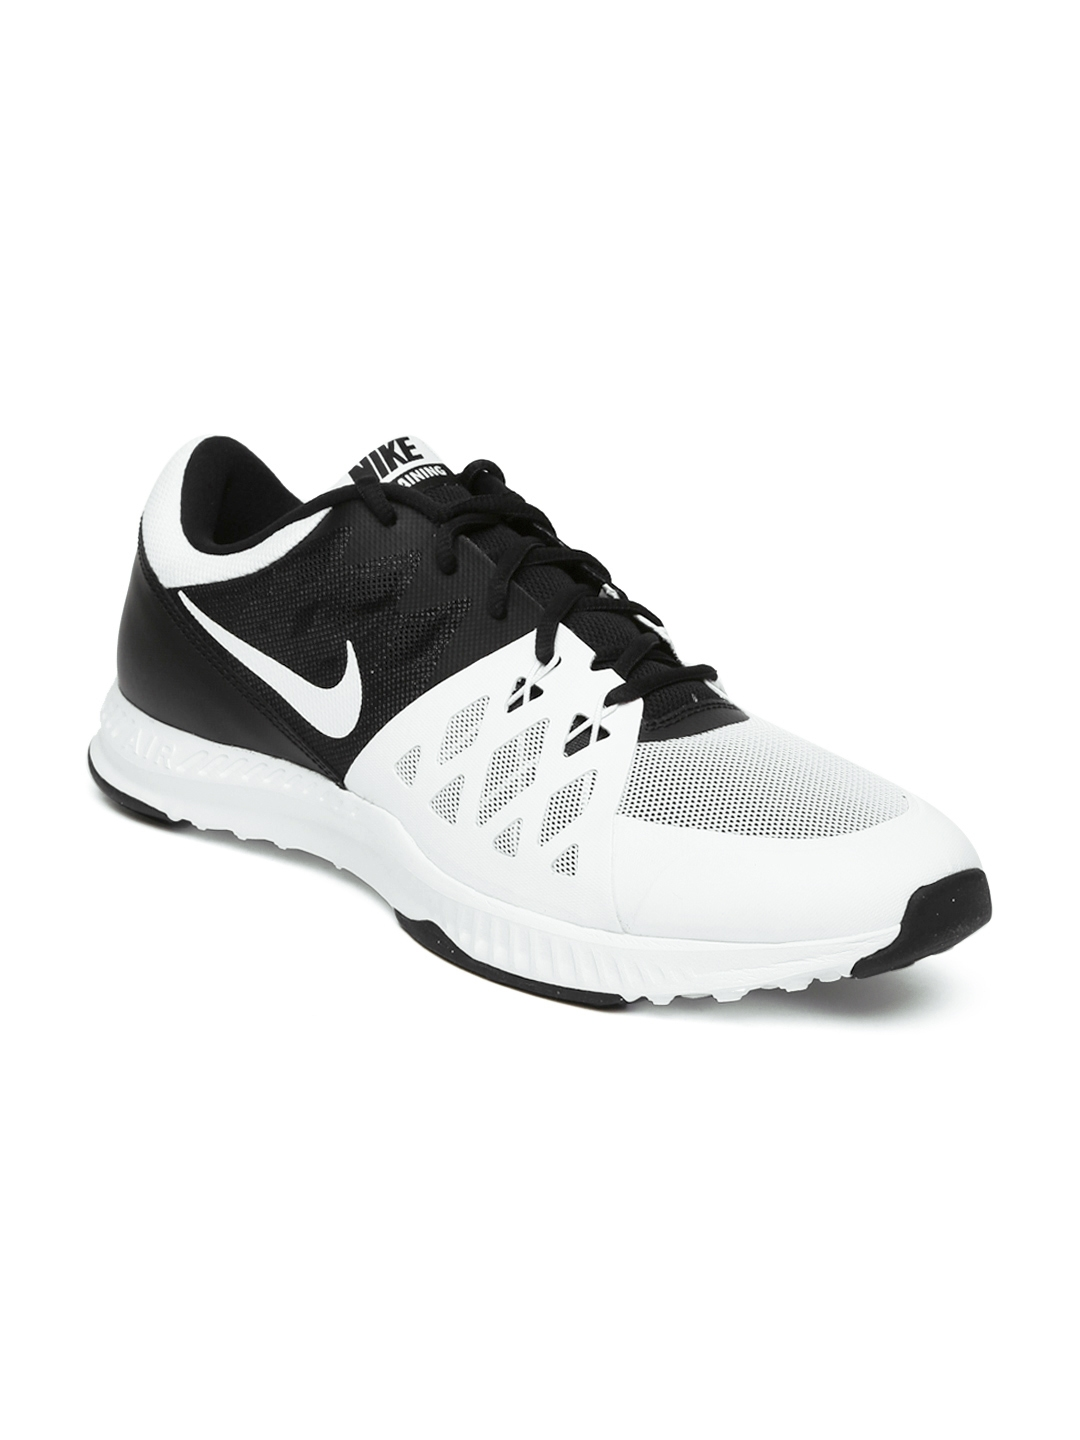 nike shoes white and black. nike men white \u0026 black air speed tr ii training shoes and